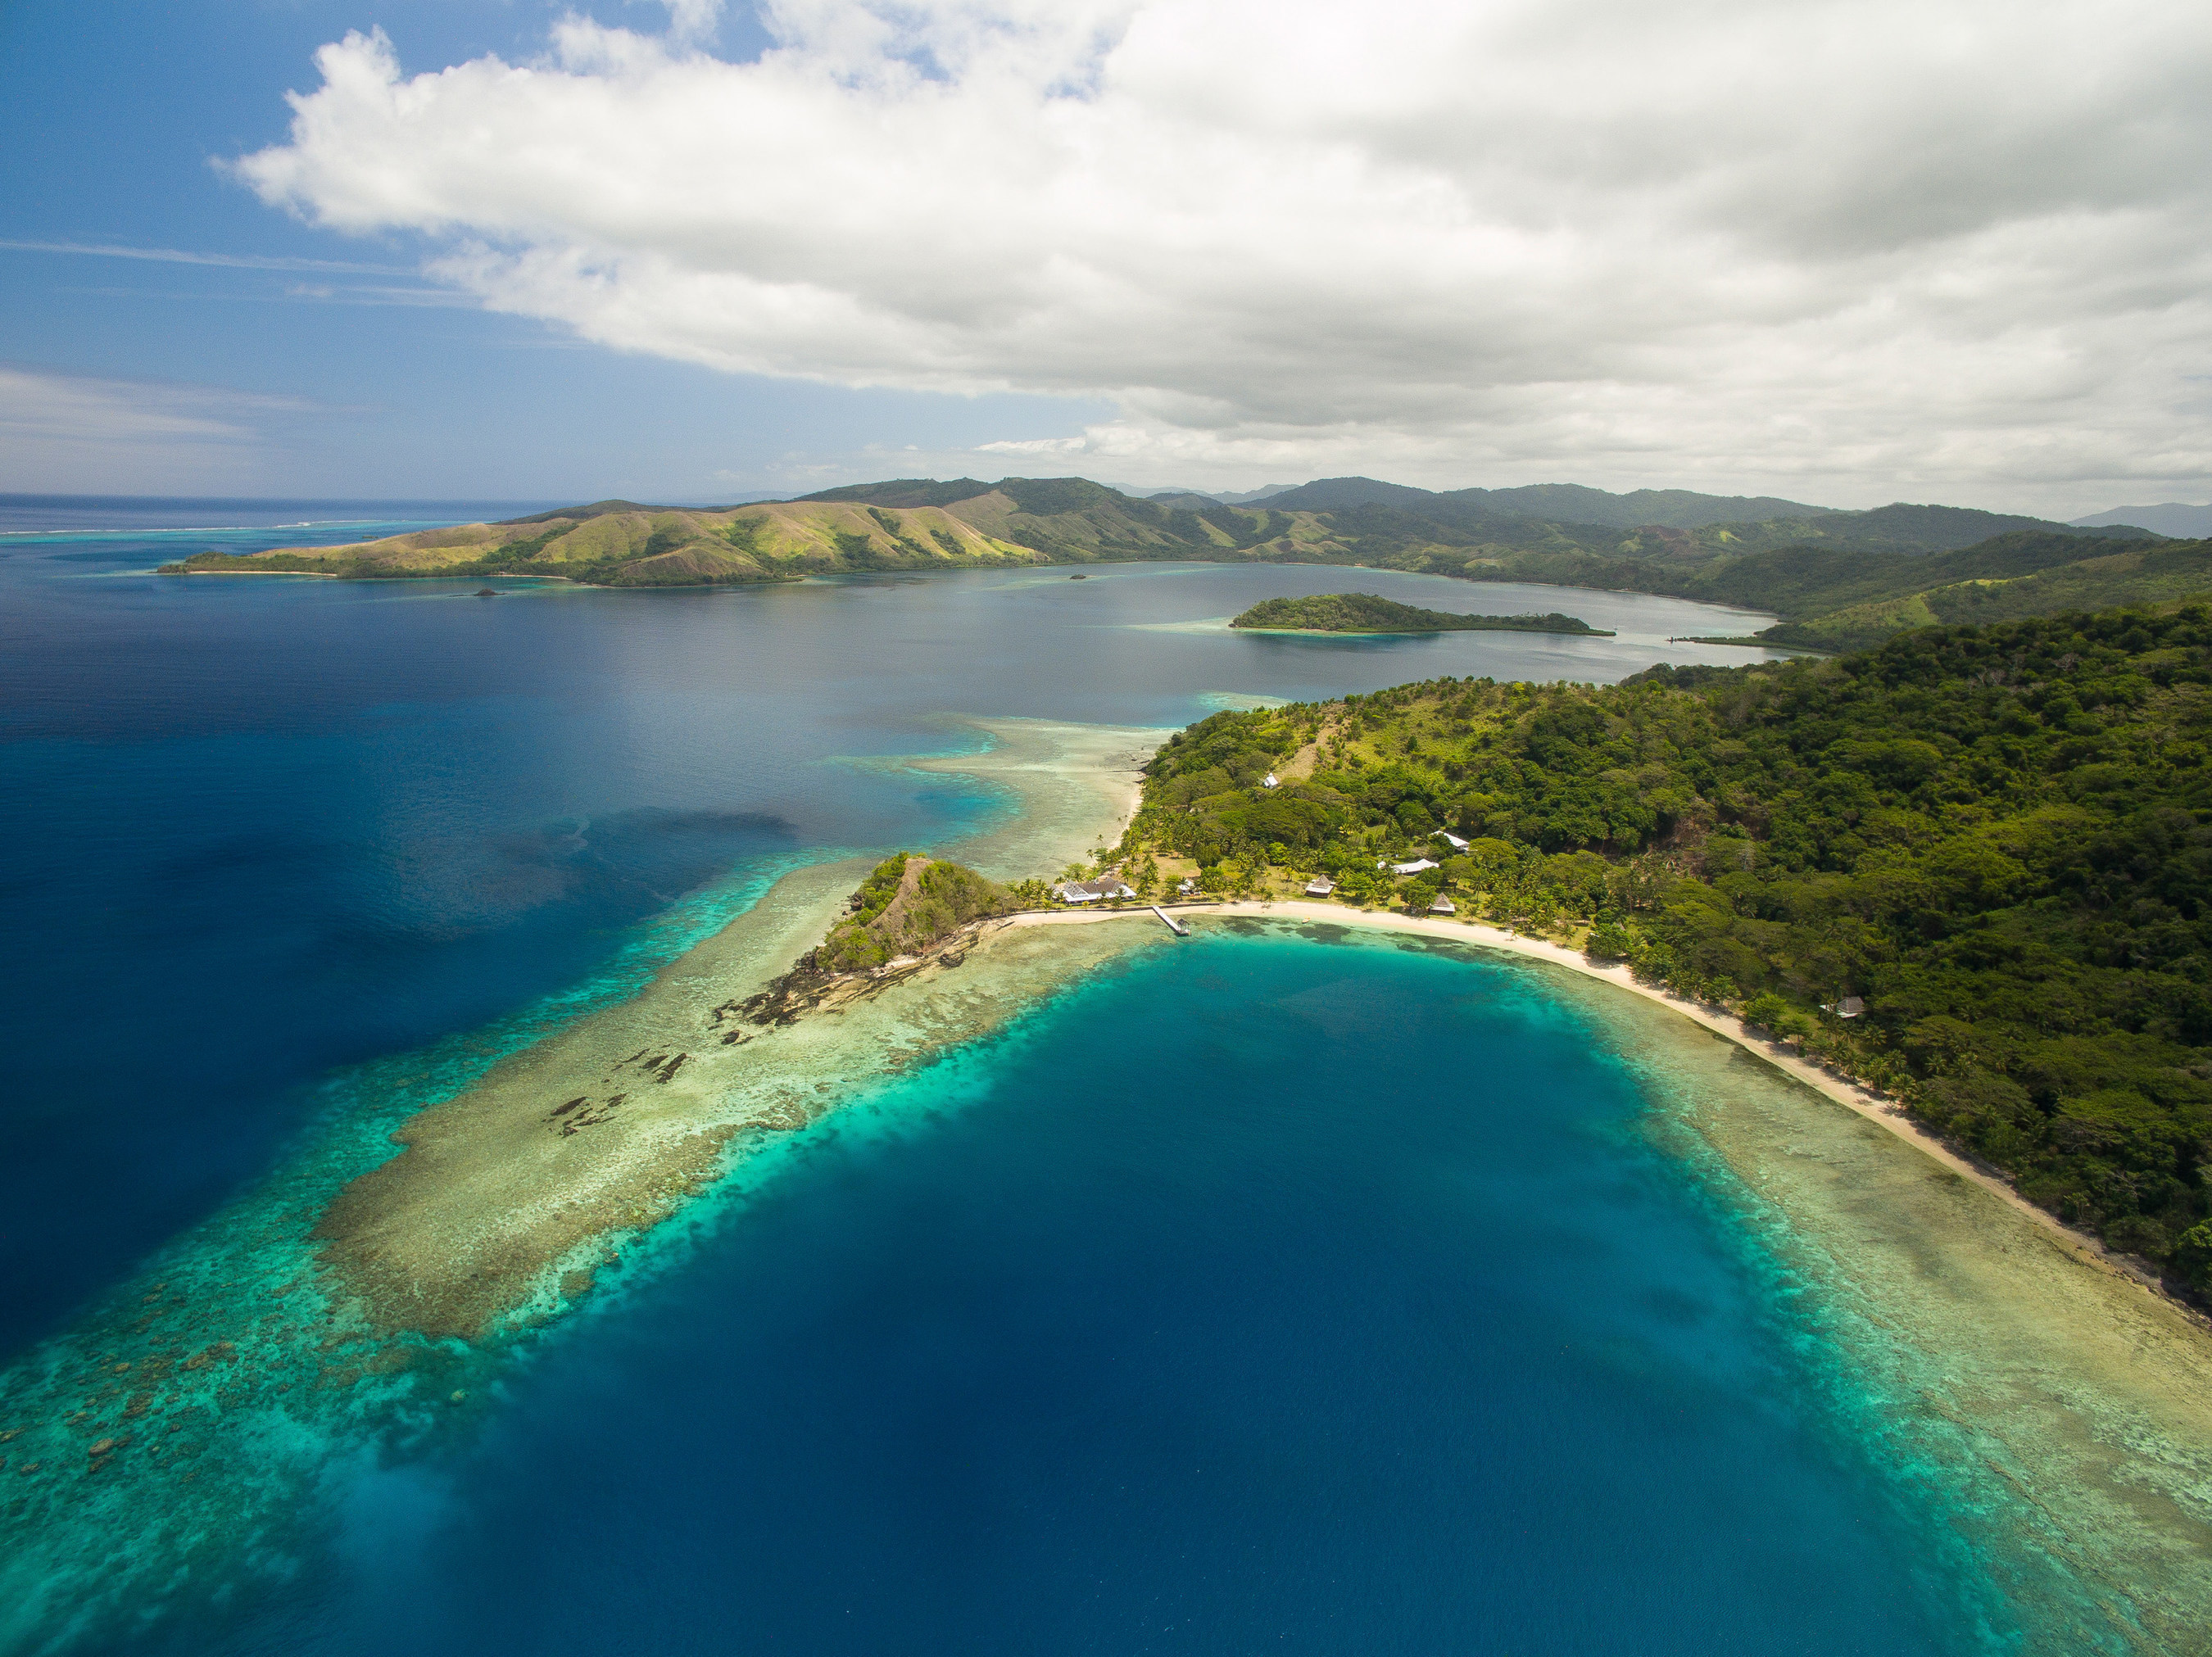 150 Acre Fijian Dream Set to be Auctioned